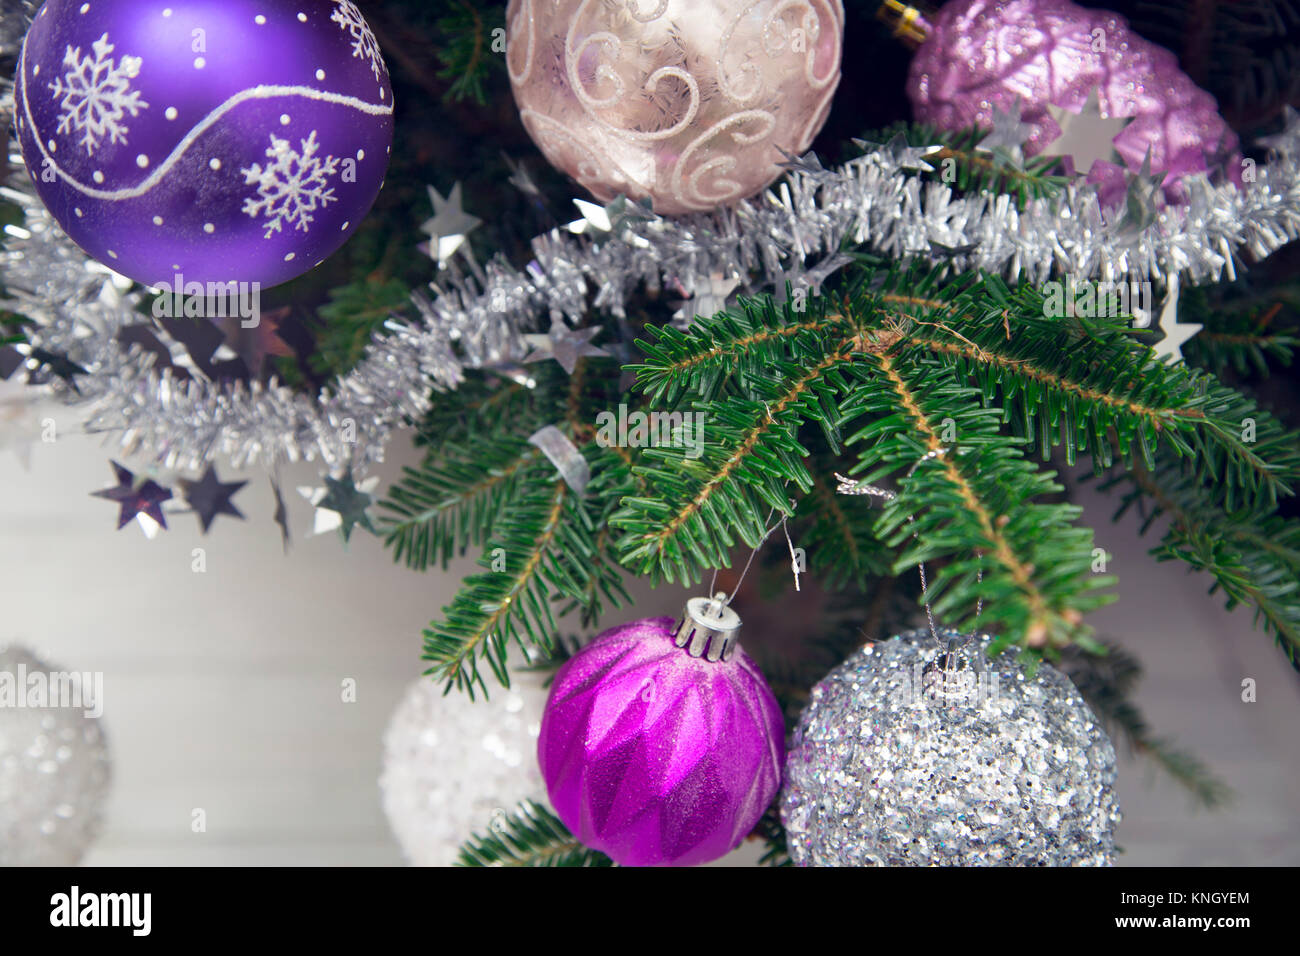 Purple Silver Christmas Baubles Gift Stock Photos & Purple Silver ...